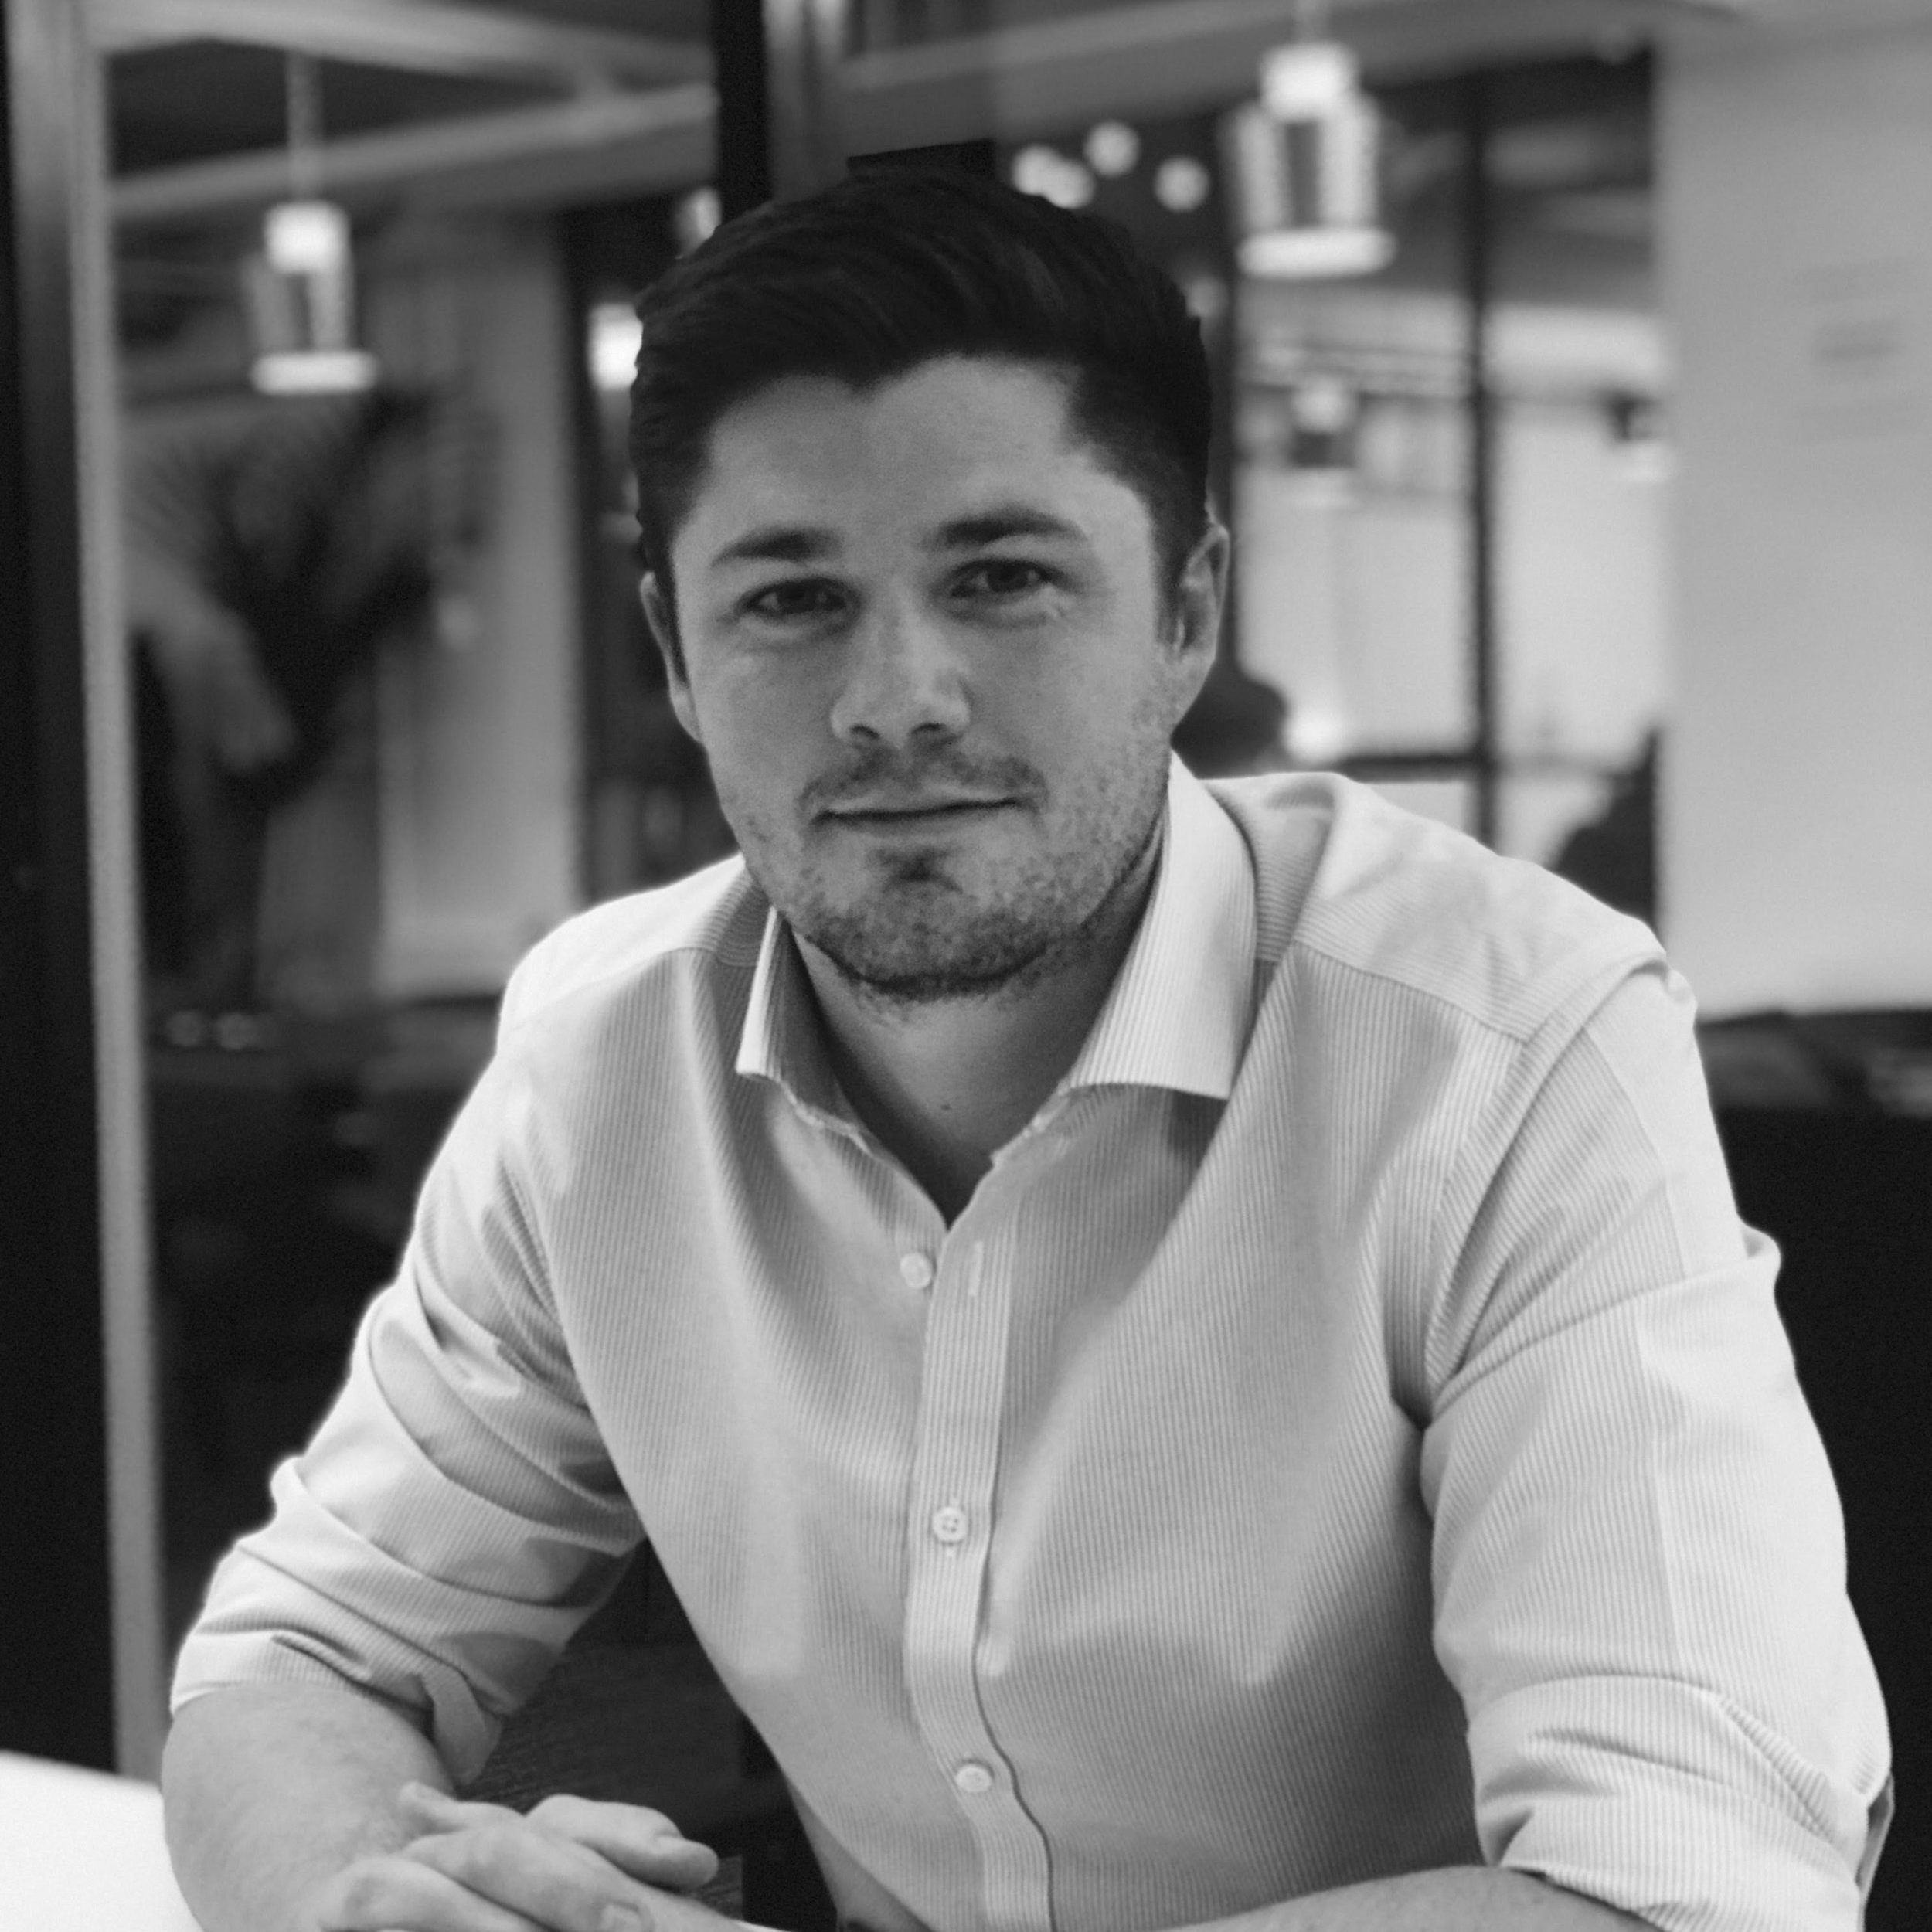 James Olver - Director of Business Development - 10 years experience in the payments industry, specialist in disruptive payments solutions and business development.Previously worked as:VP Business Development: Checkout.comSales Director: BluesnapUK Sales Director: BraintreeRegional Sales Manager: BarclaycardCorporate Business Development: First Data